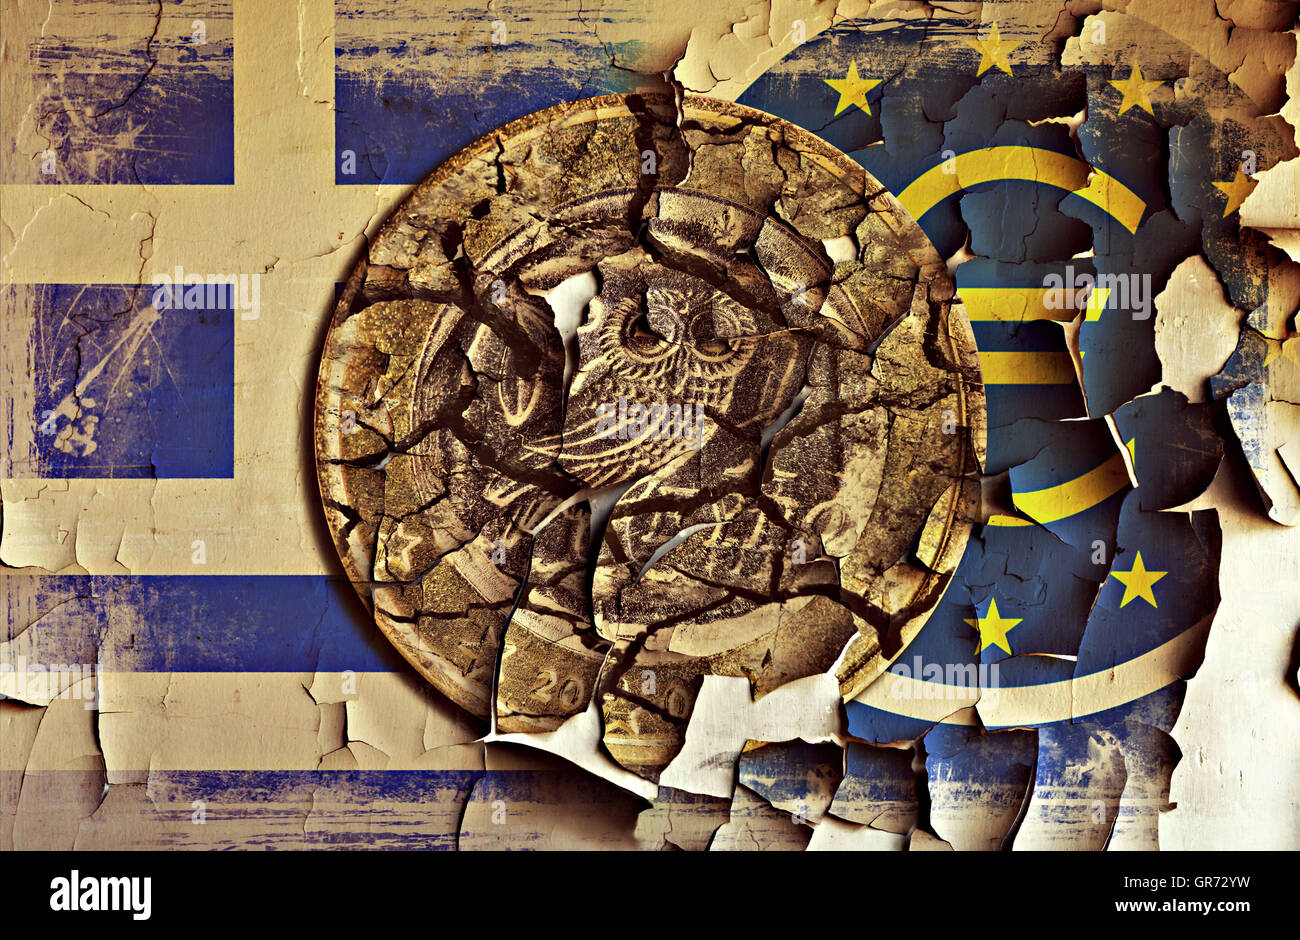 Greek Euro Coin And Ecb Sign On A Grungy Wall, Greek Debt Crisis - Stock Image